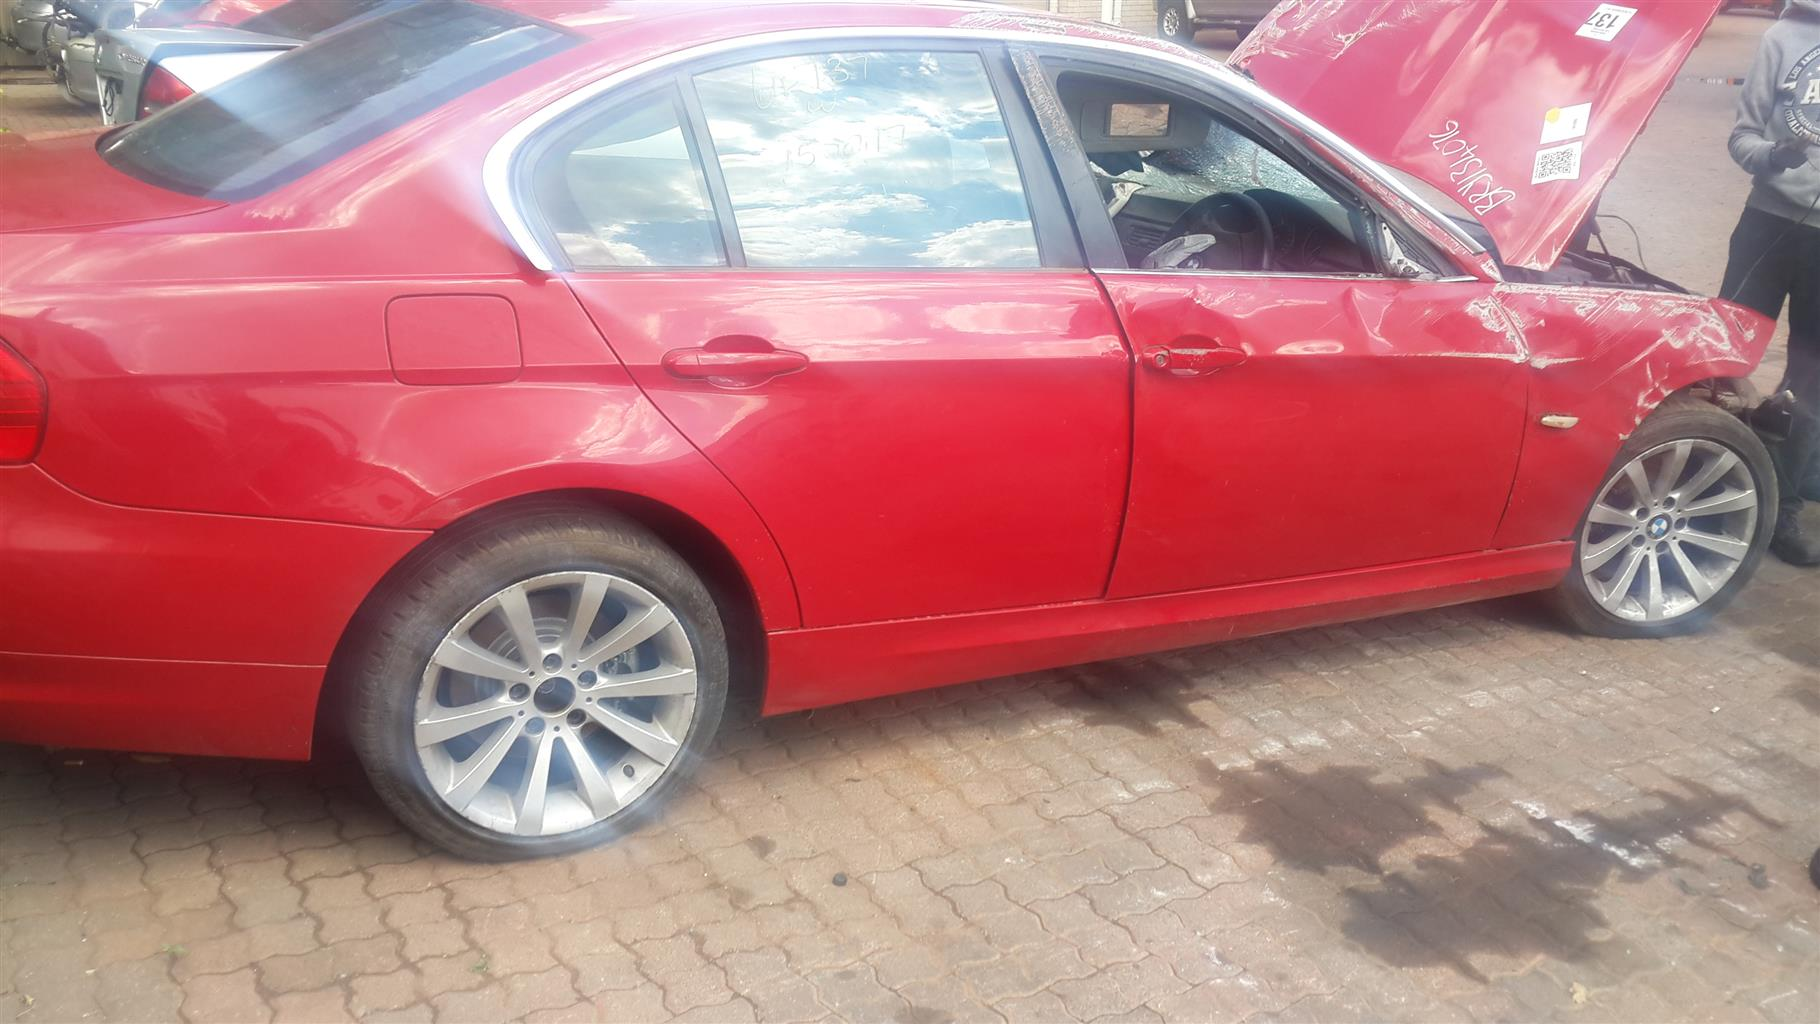 Coupe Series bmw e90 for sale BMW E90 323I Spares For Sale | Junk Mail